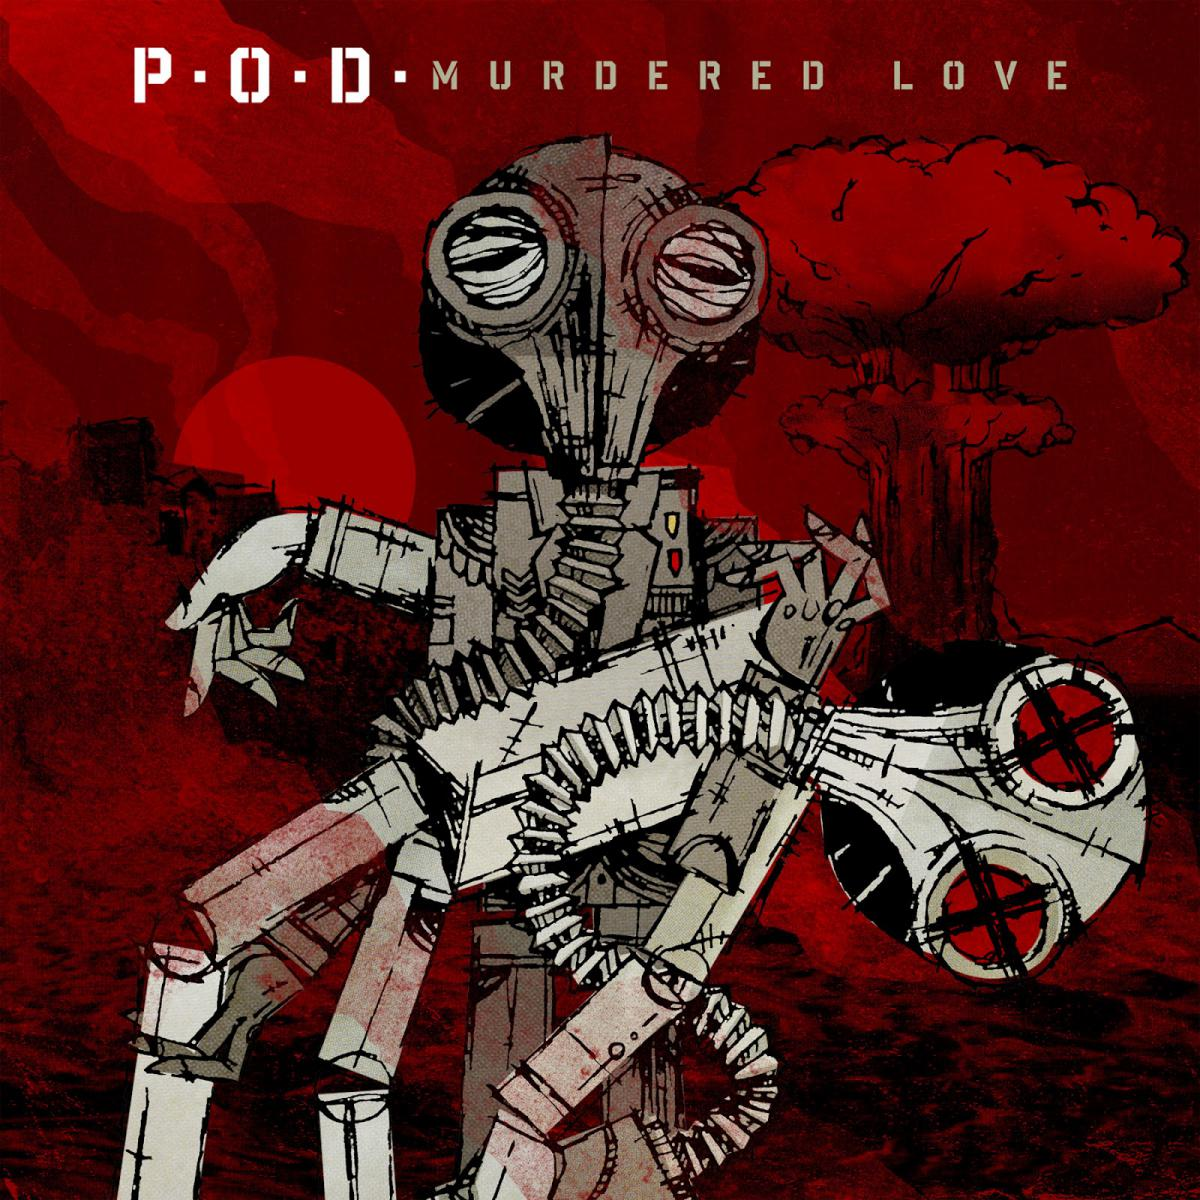 P.O.D. - Murdered Love<br />